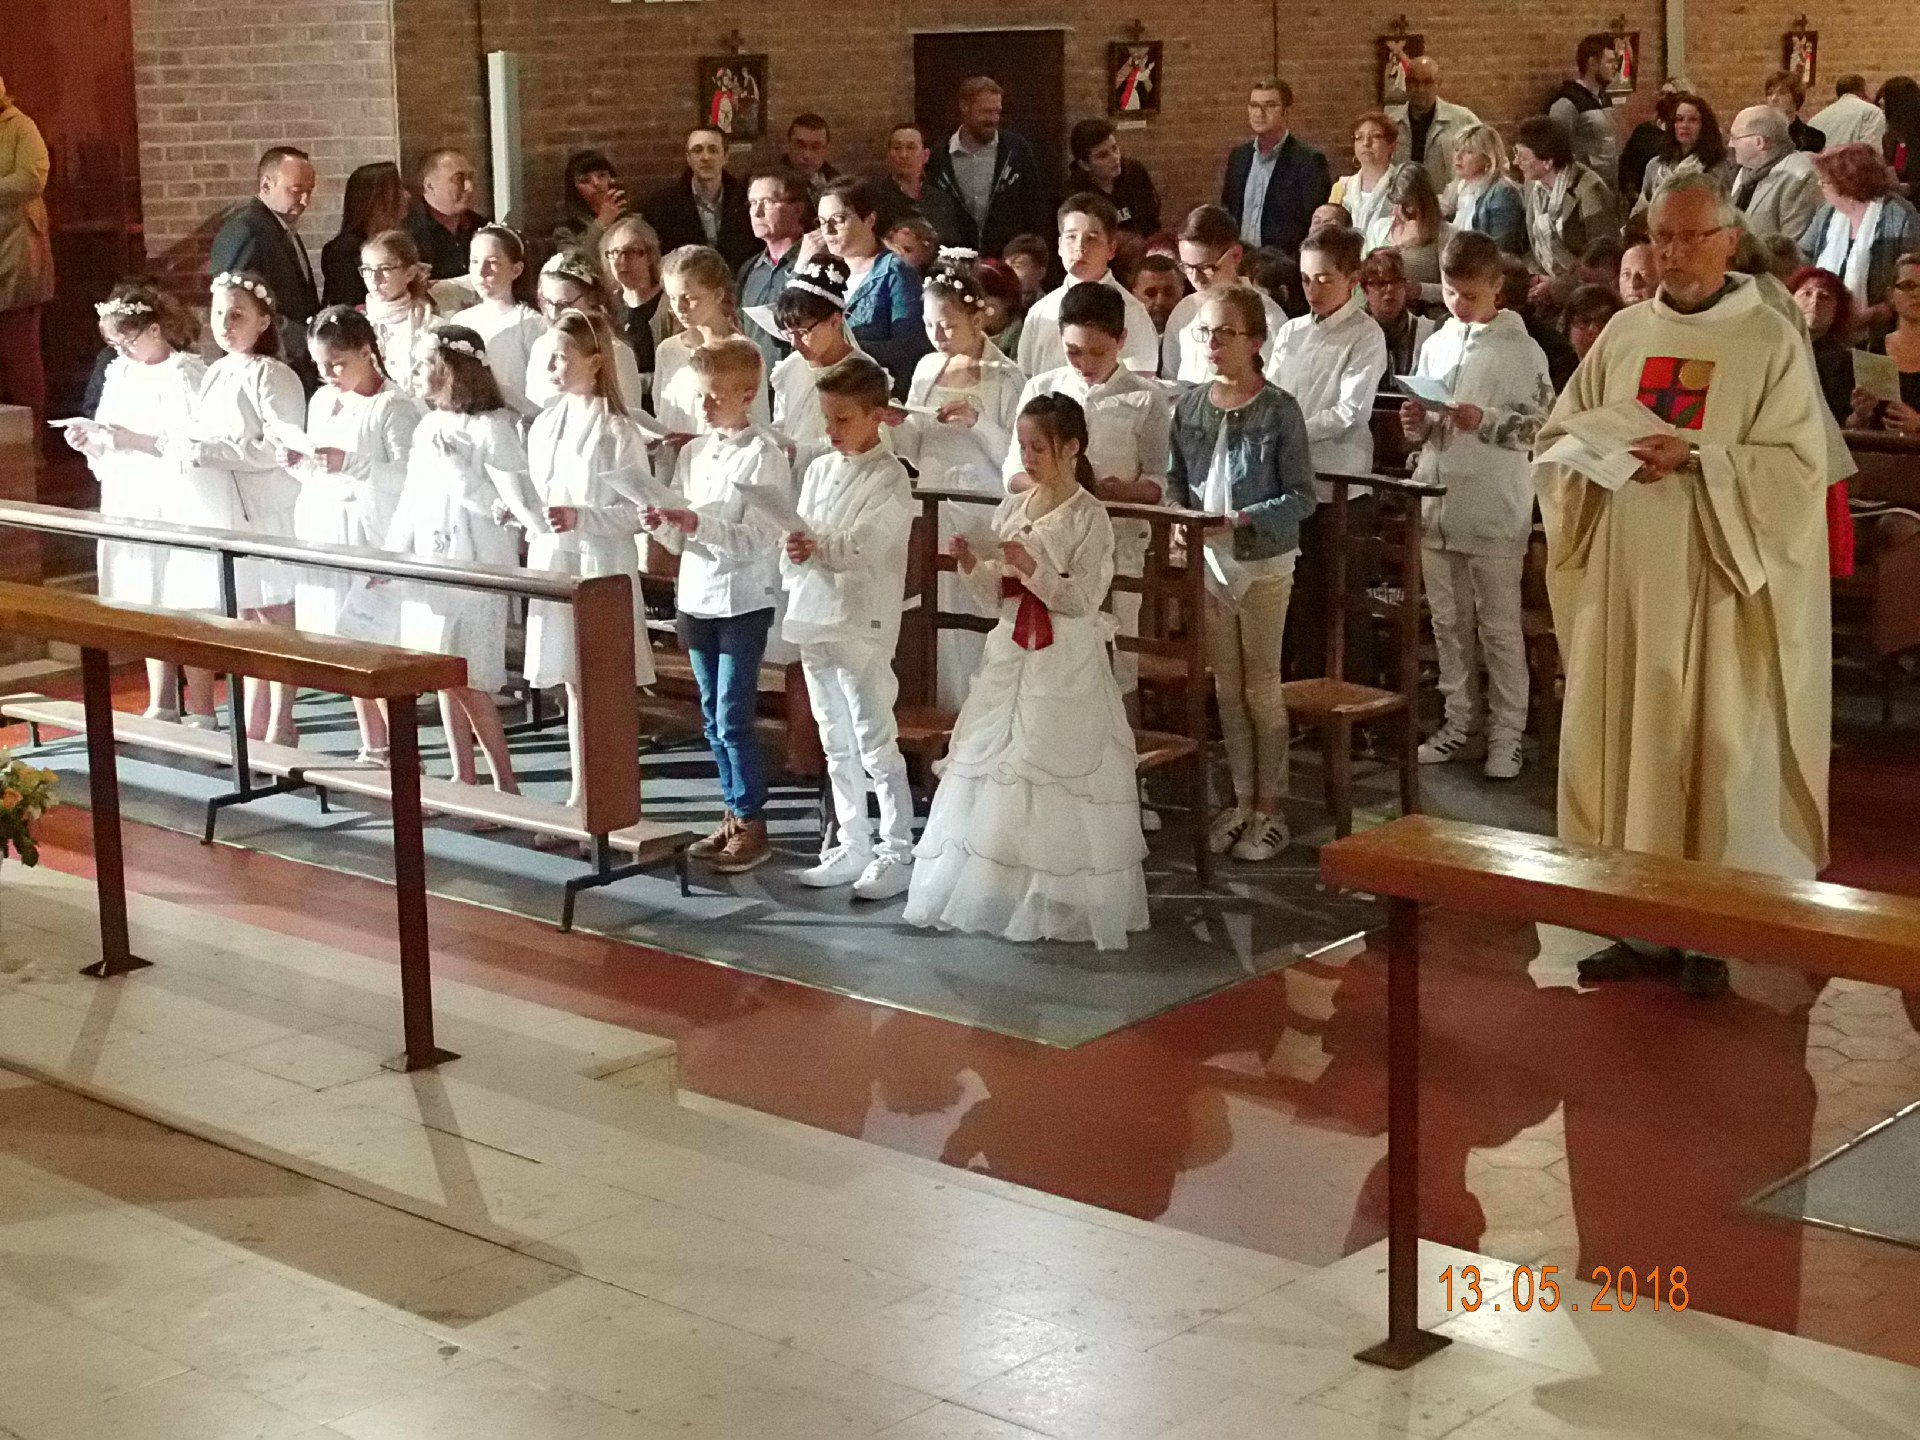 13-05-2018-1ere communion (2)